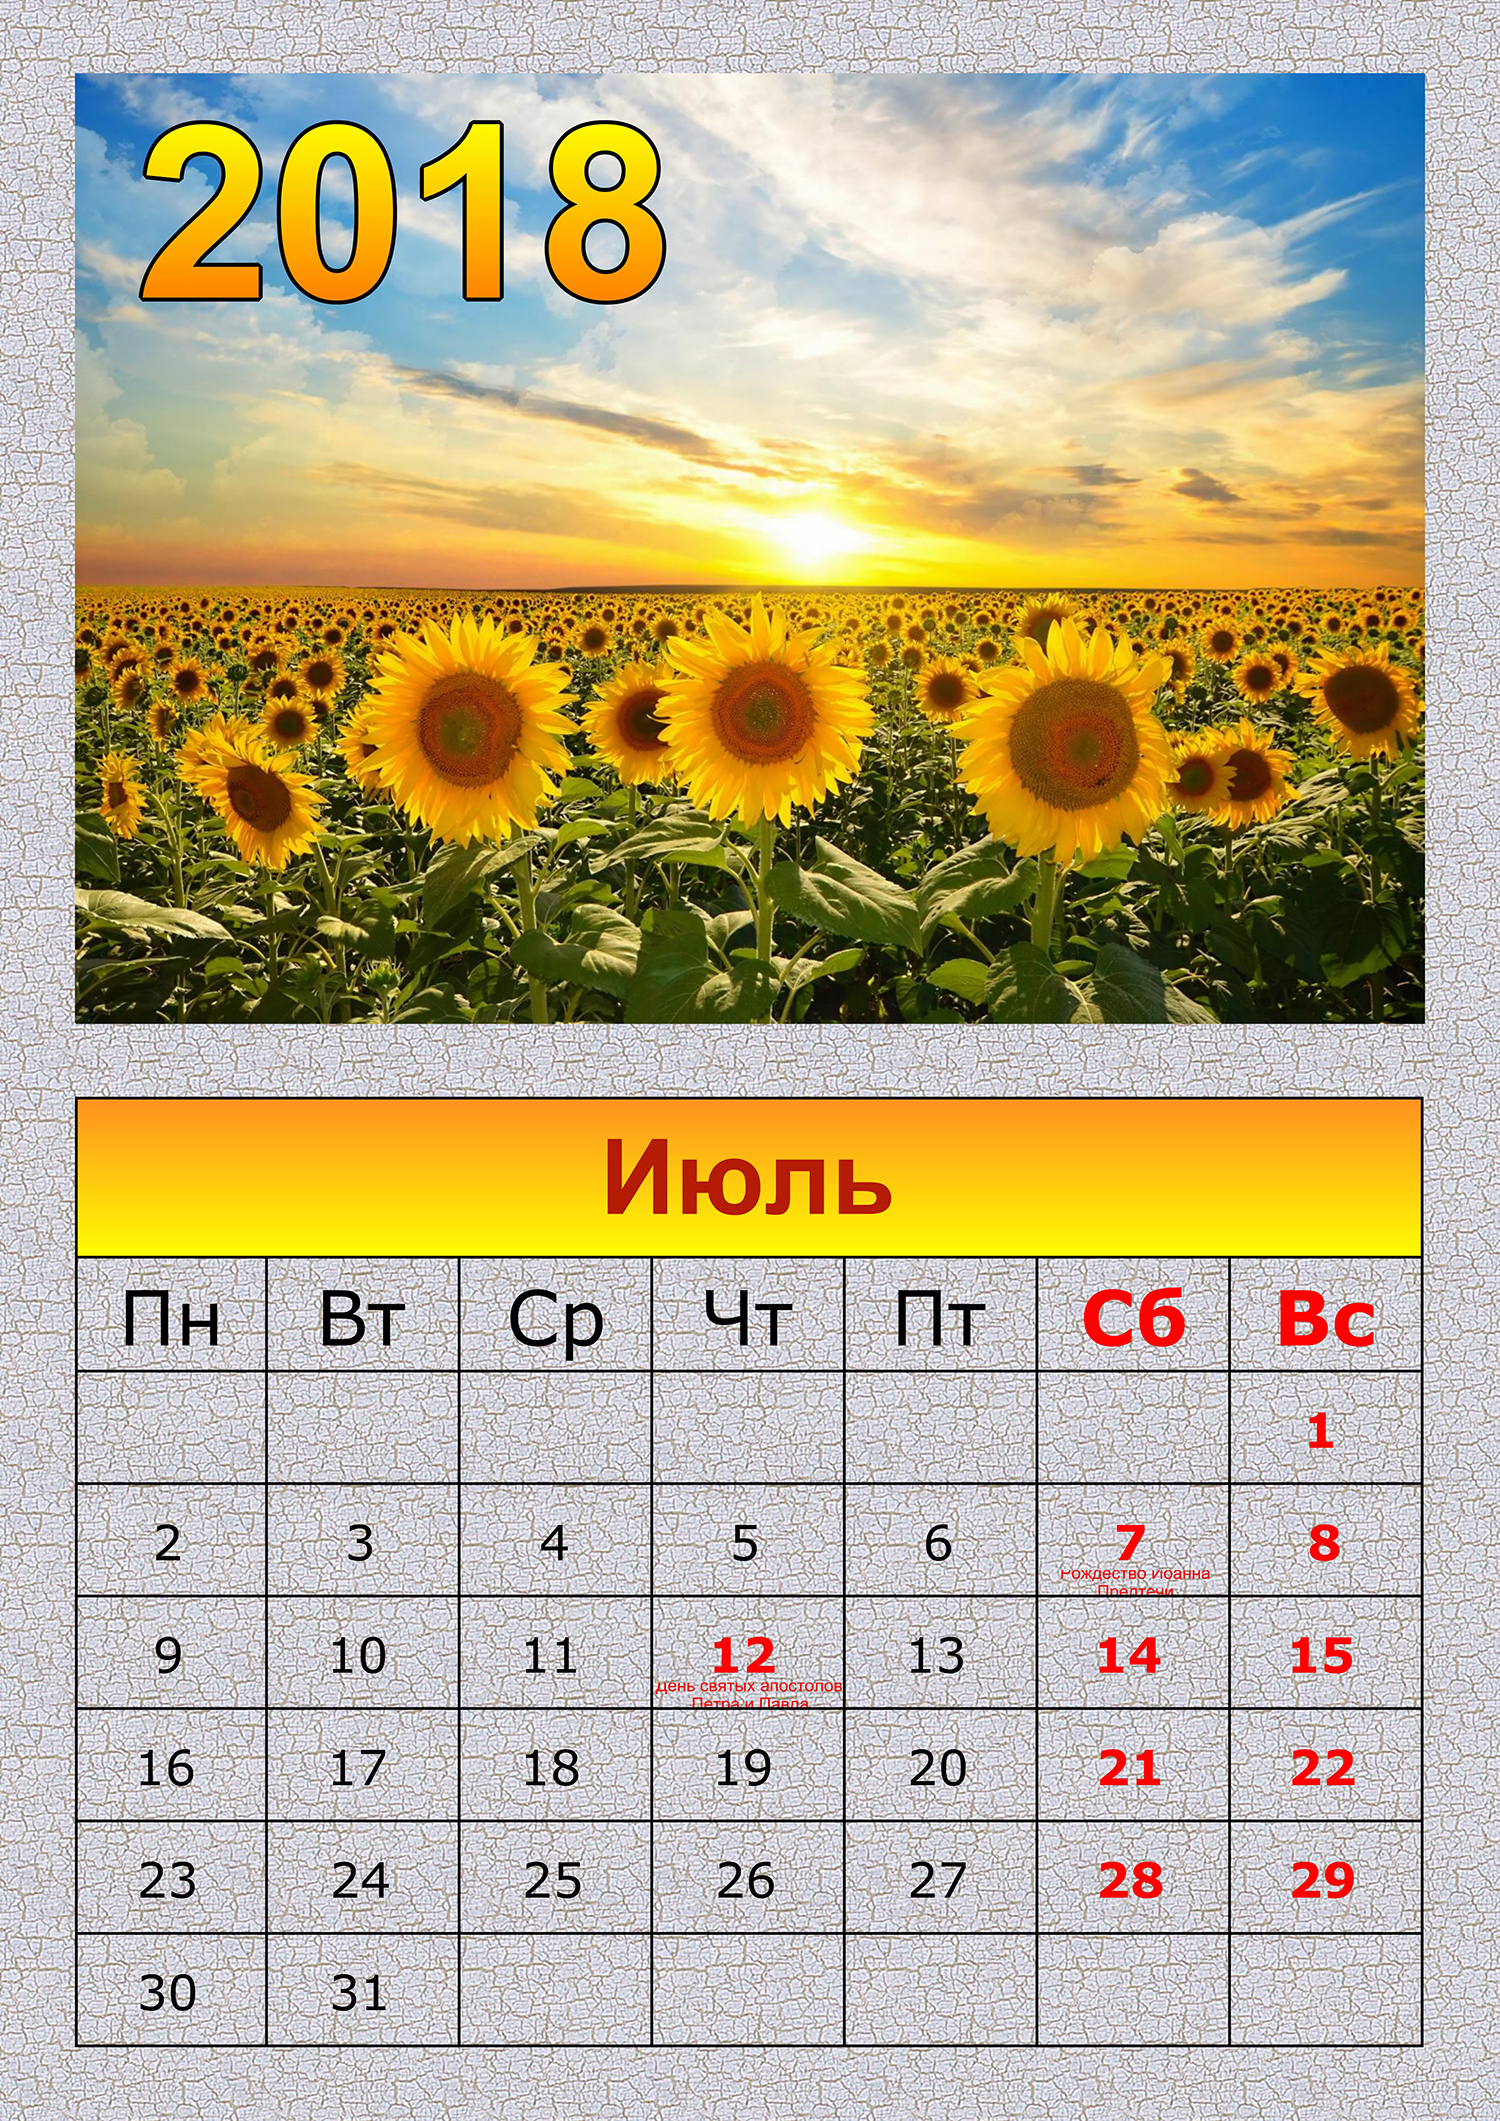 Holidays in July 2018 in Russia. How to relax, calendar